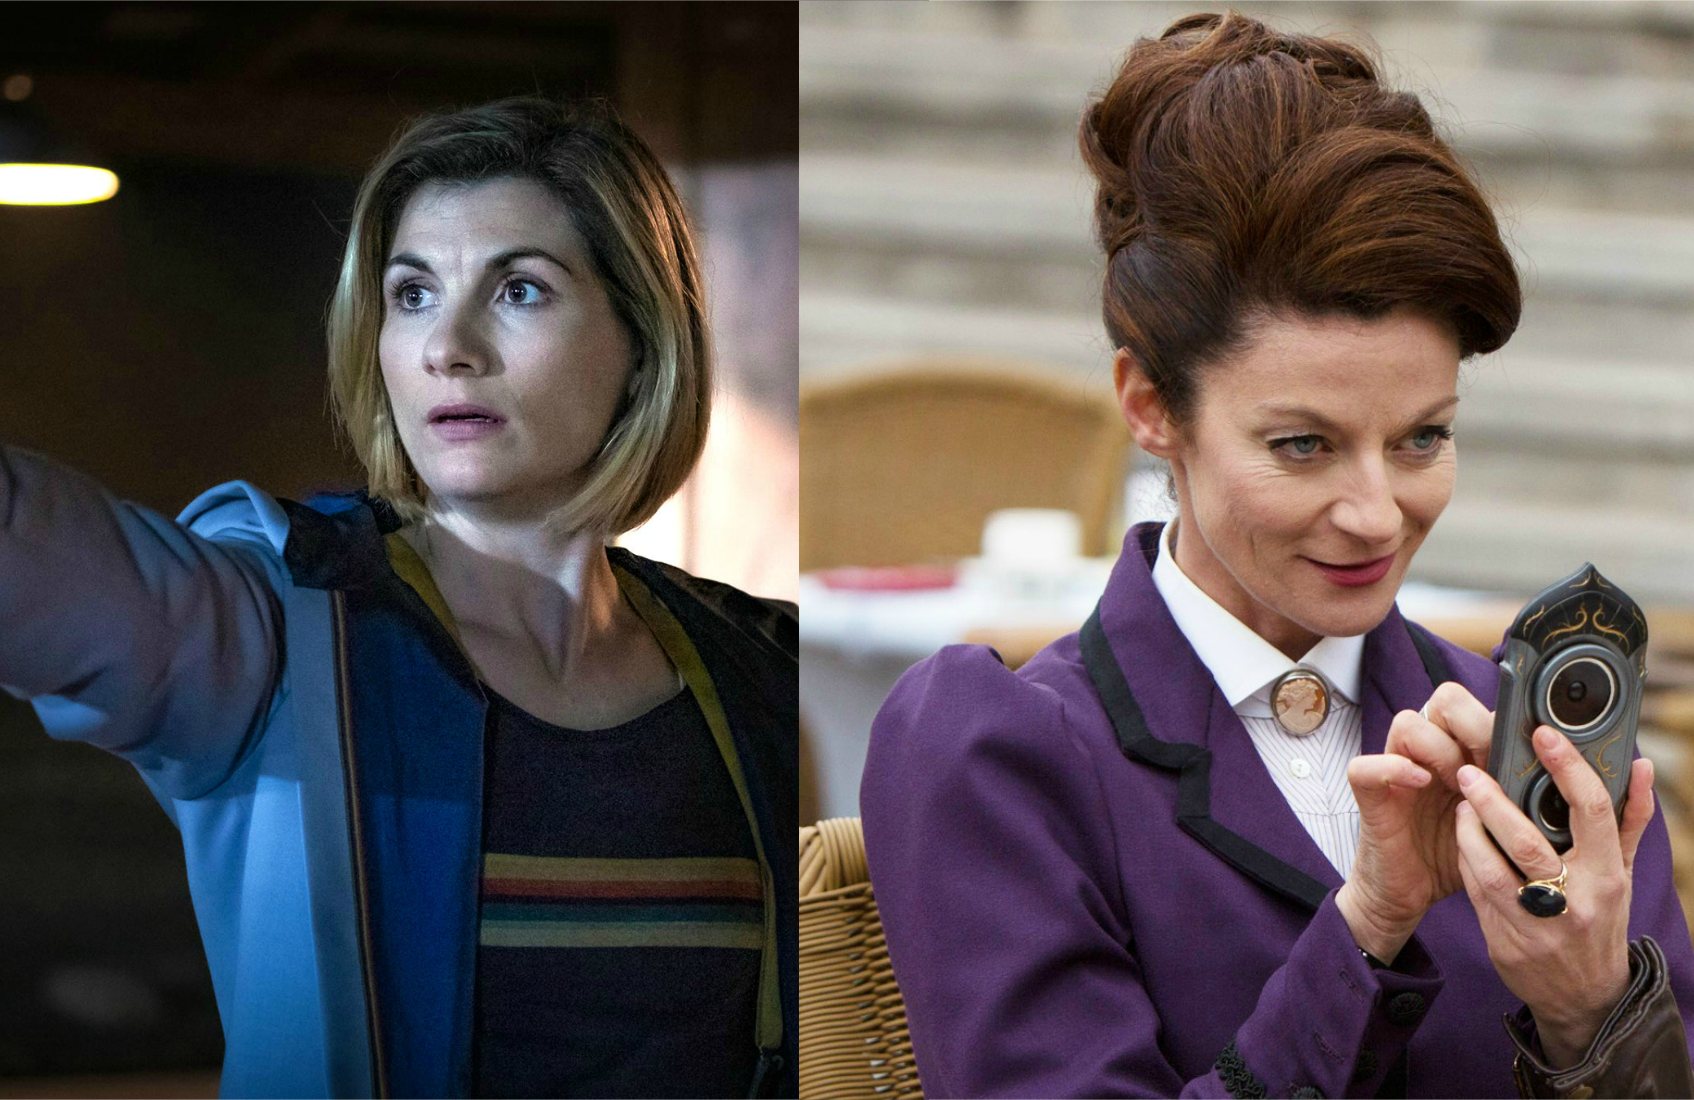 Jodie Whittaker and Michelle Gomez in Doctor Who. (Photos: BBC America)